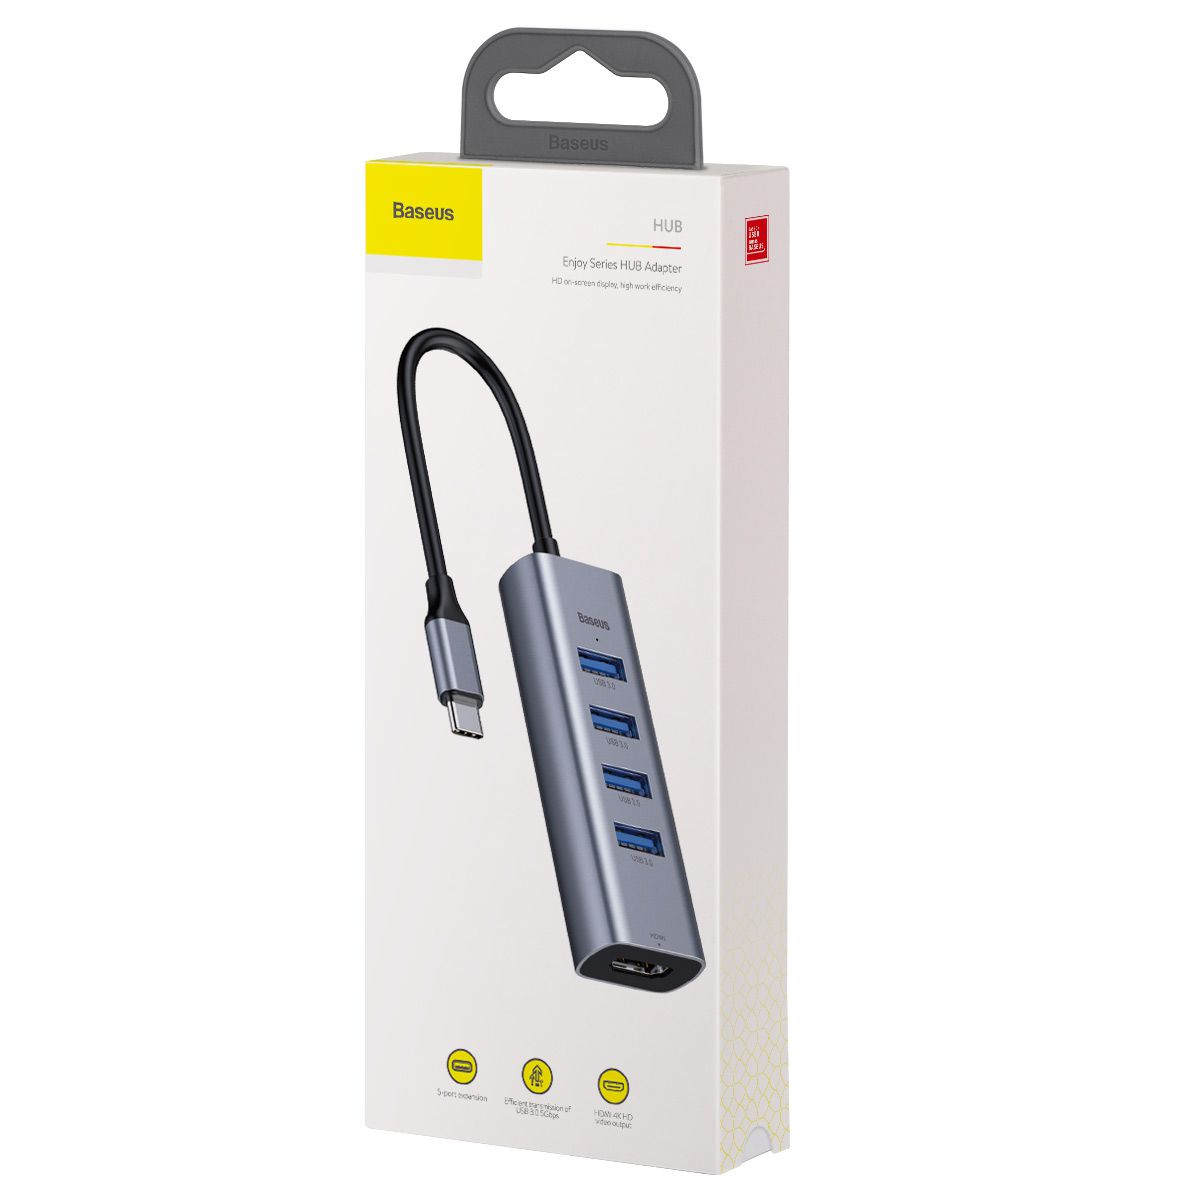 HUB Baseus Enjoy HDMI + 4 USB 3.0